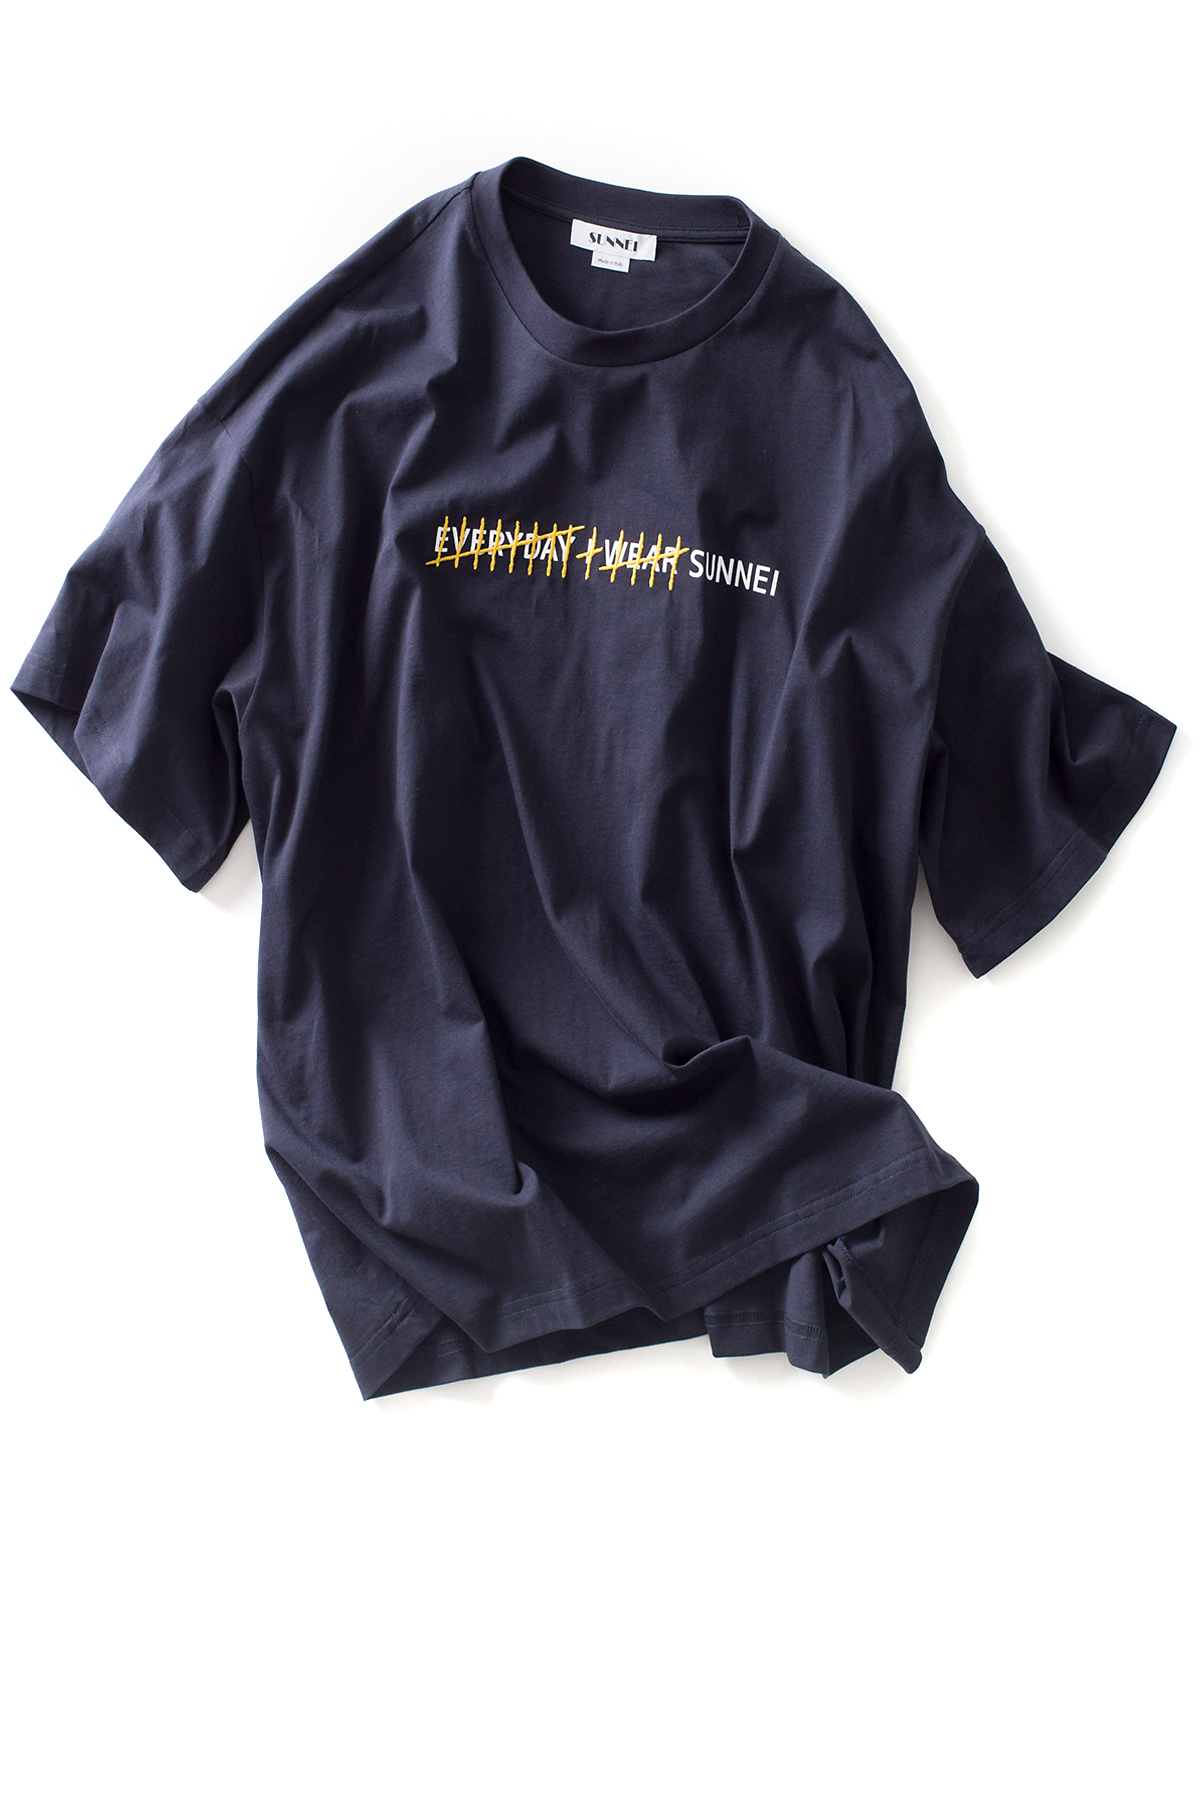 SUNNEI : T-Shirt Over Tally Mark Every I Wear Sunnei (Navy)